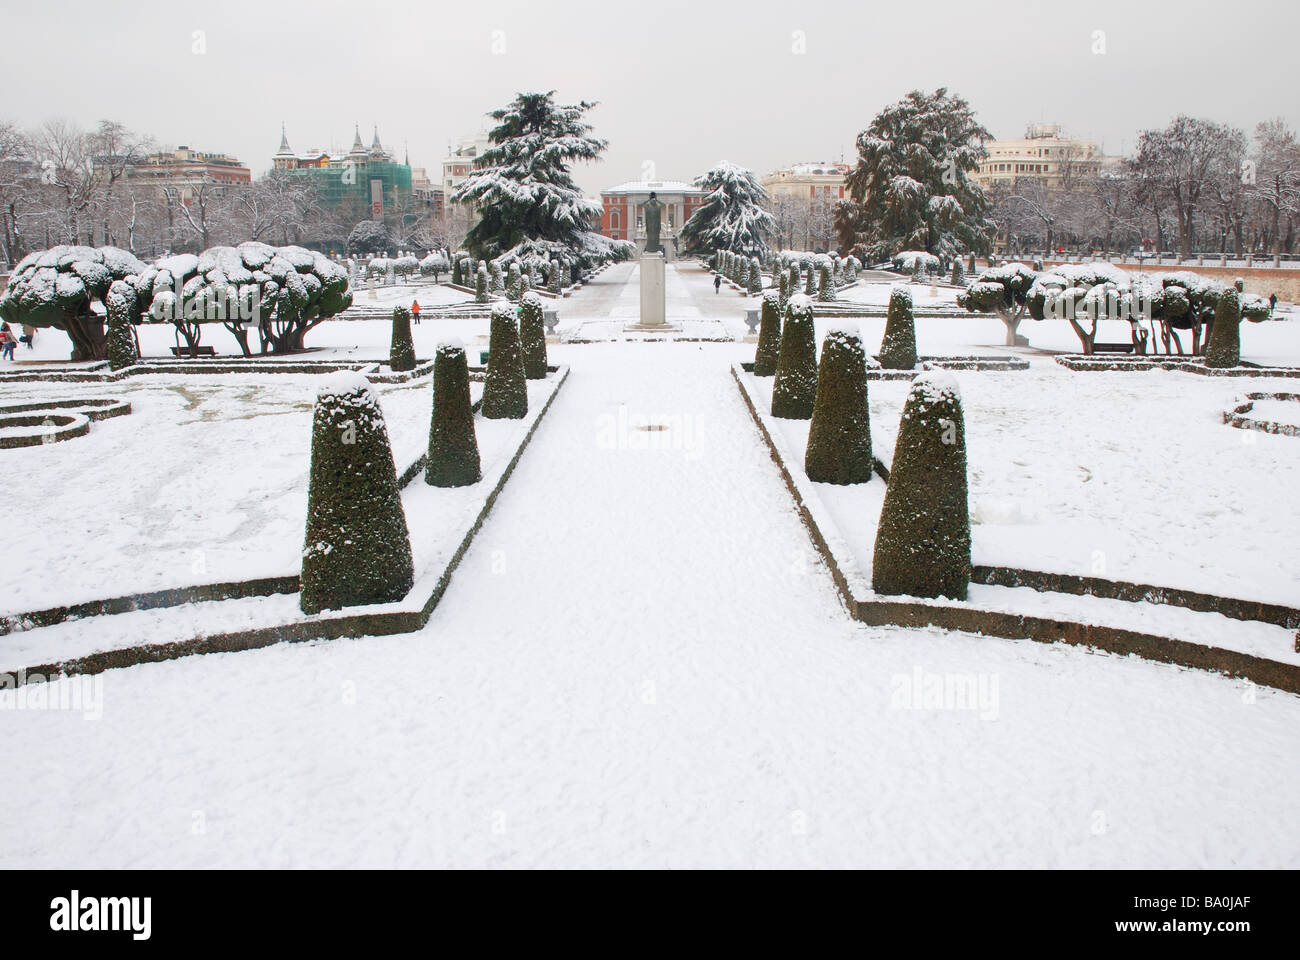 Snow covered Parterre. The Retiro park. Madrid. Spain. - Stock Image